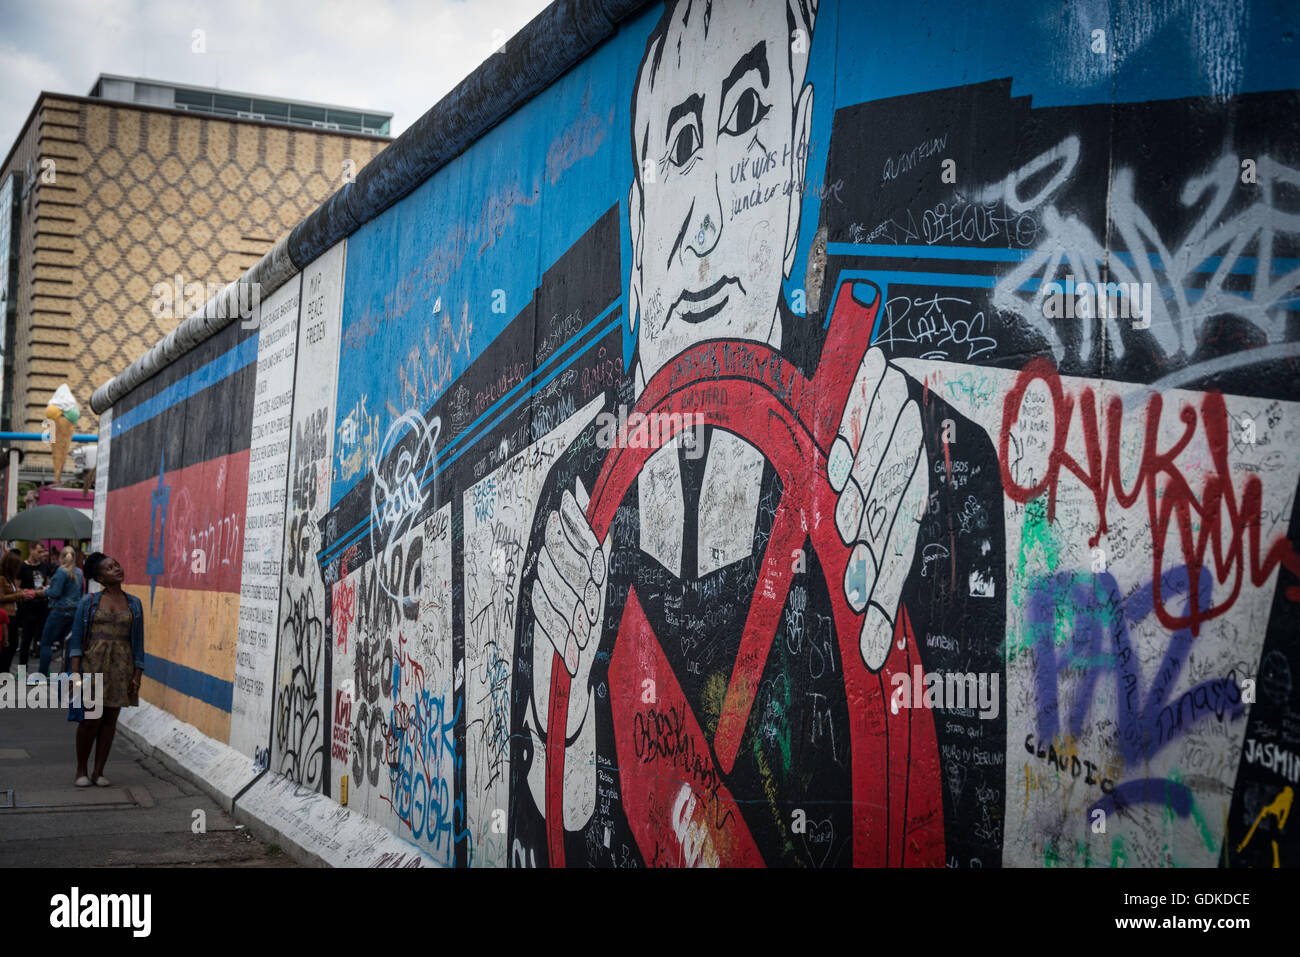 the berlin wall german berliner mauer official name stock photo royalty free image. Black Bedroom Furniture Sets. Home Design Ideas